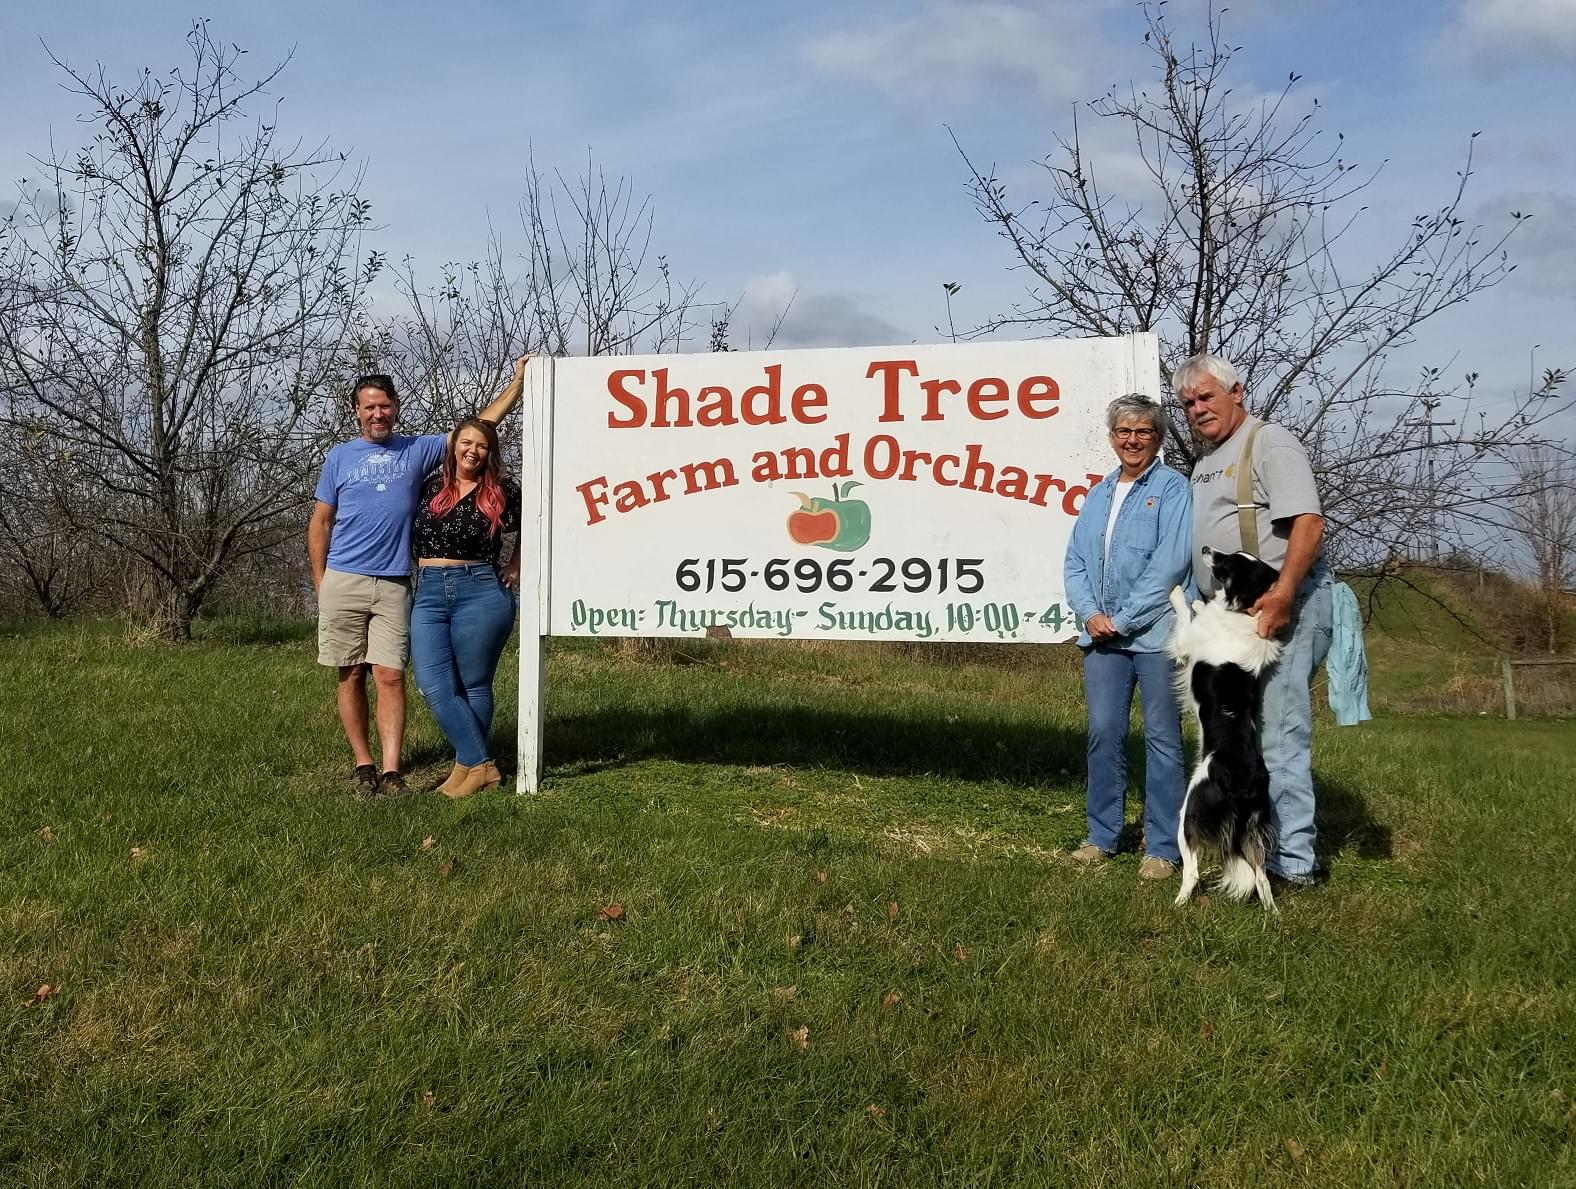 RobCo: Shade Tree Farm & Orchard